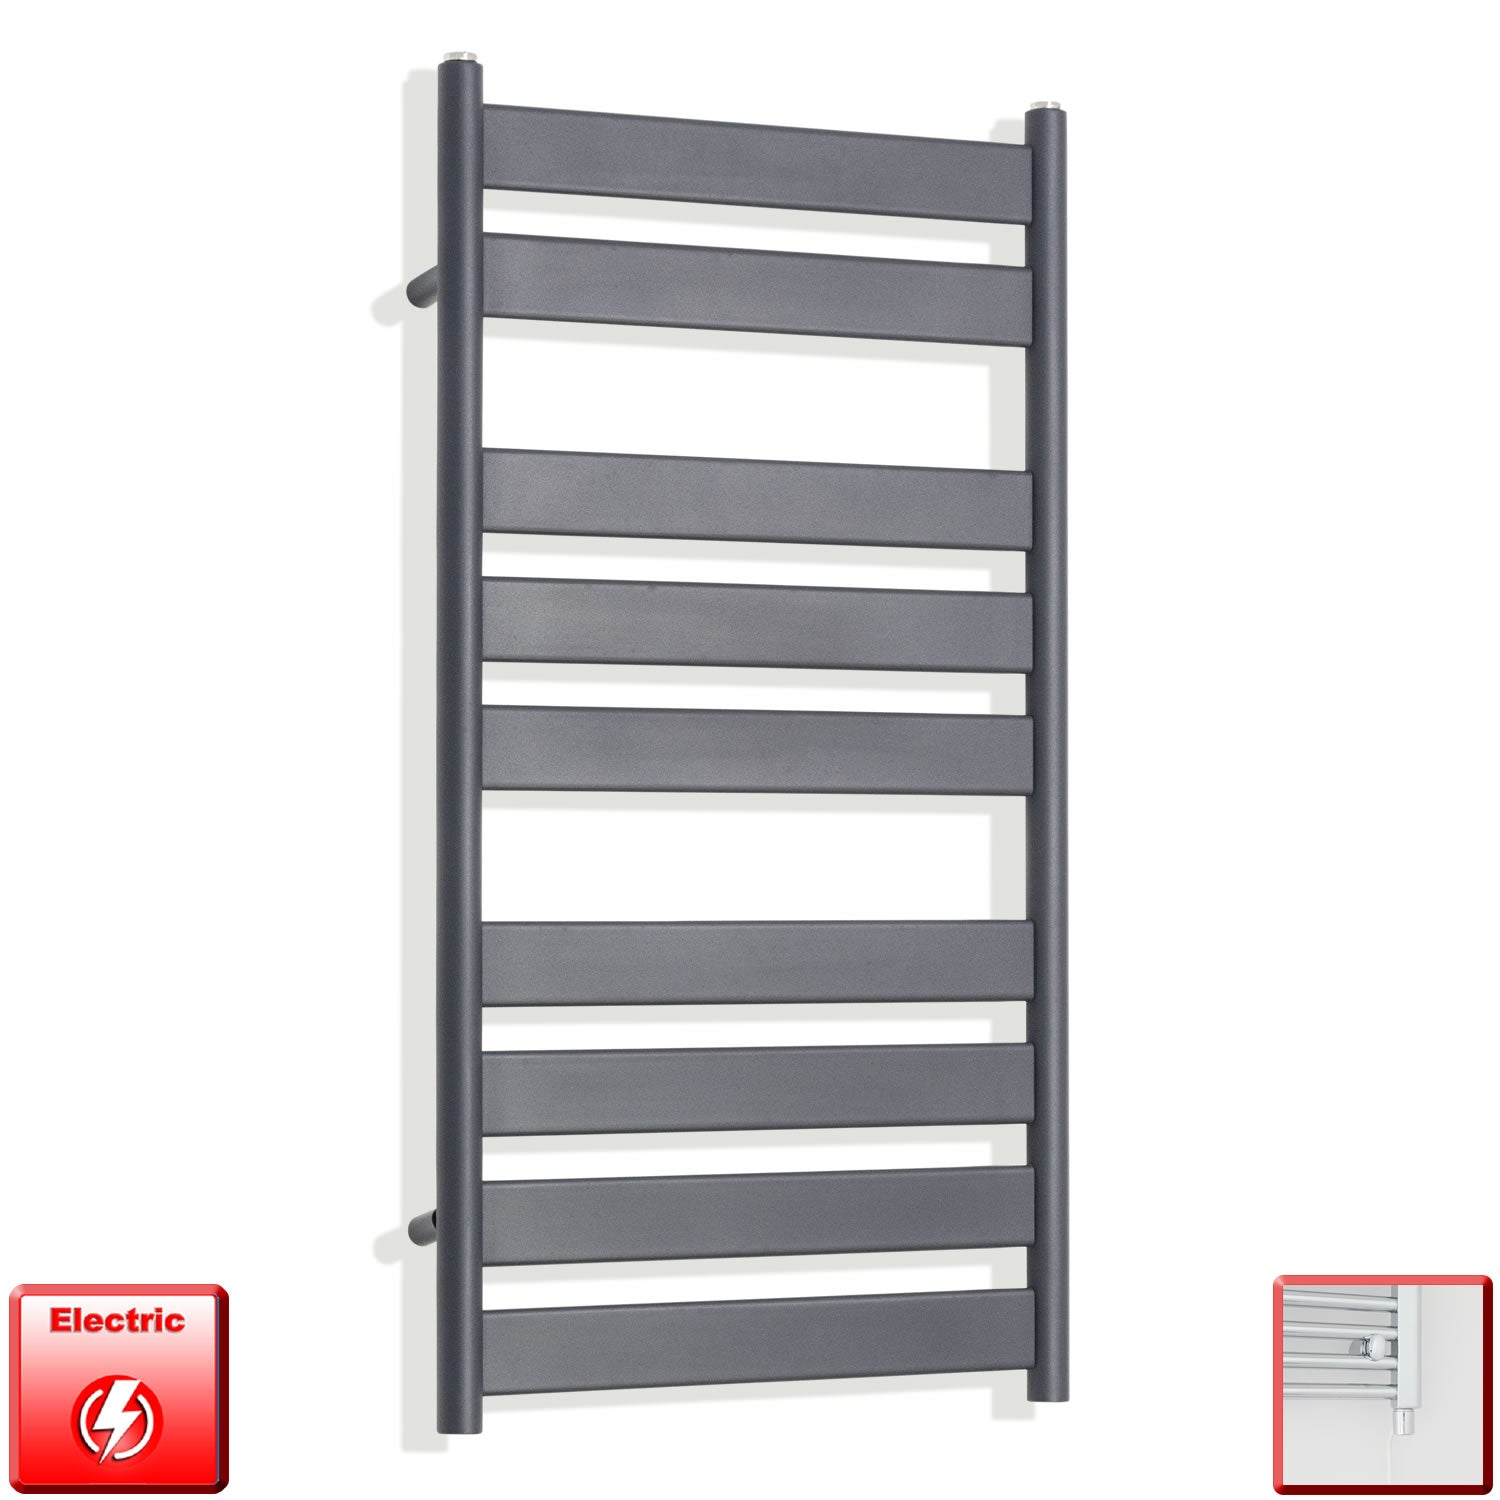 500mm Wide 950mm High Flat Panel Designer Anthracite Heated Towel Rail Radiator HTR,Electric Single Heat Element